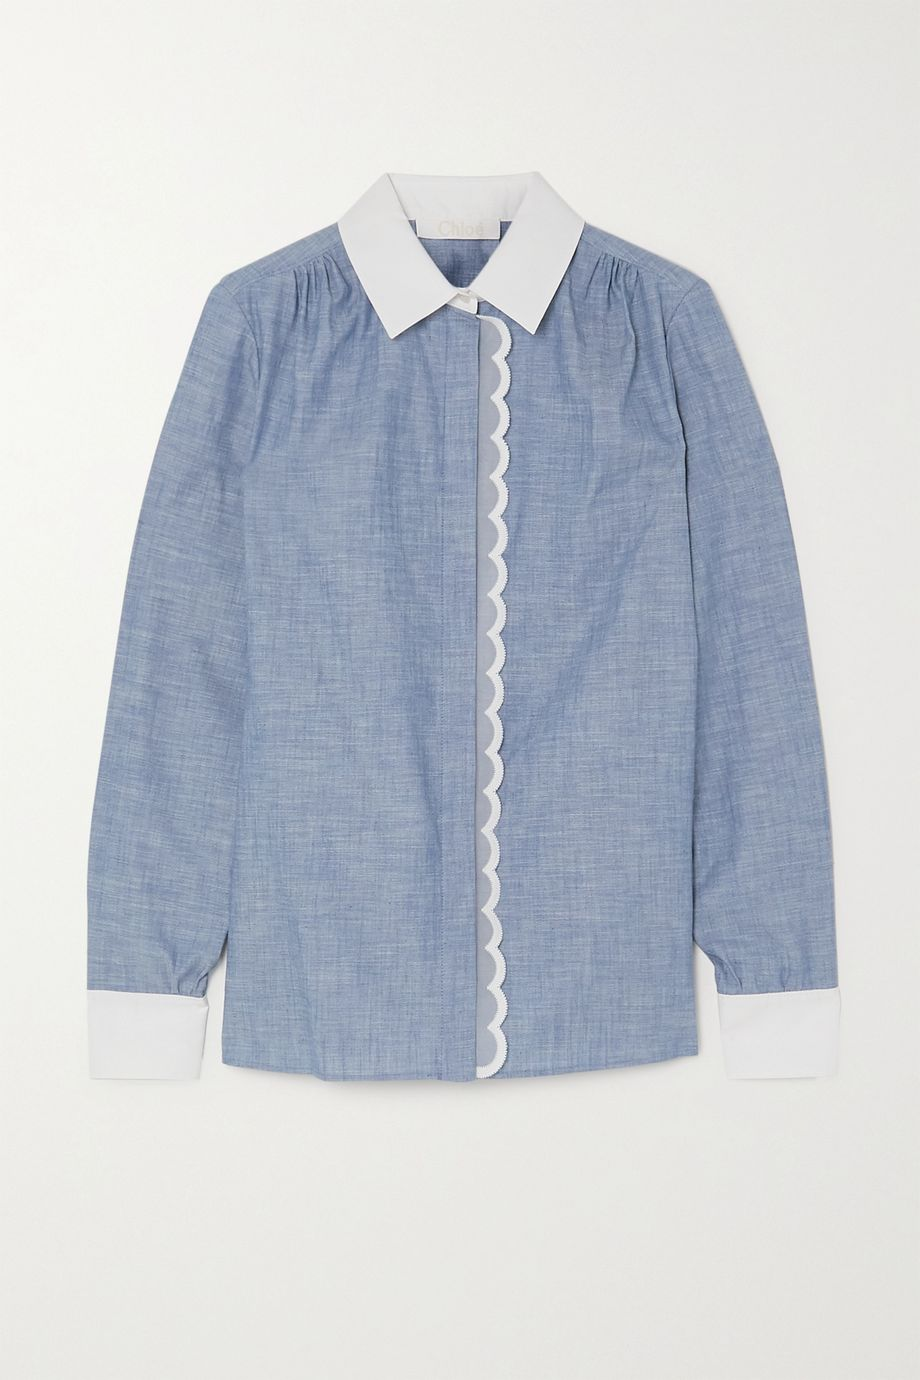 Chloé Scalloped cotton-chambray shirt